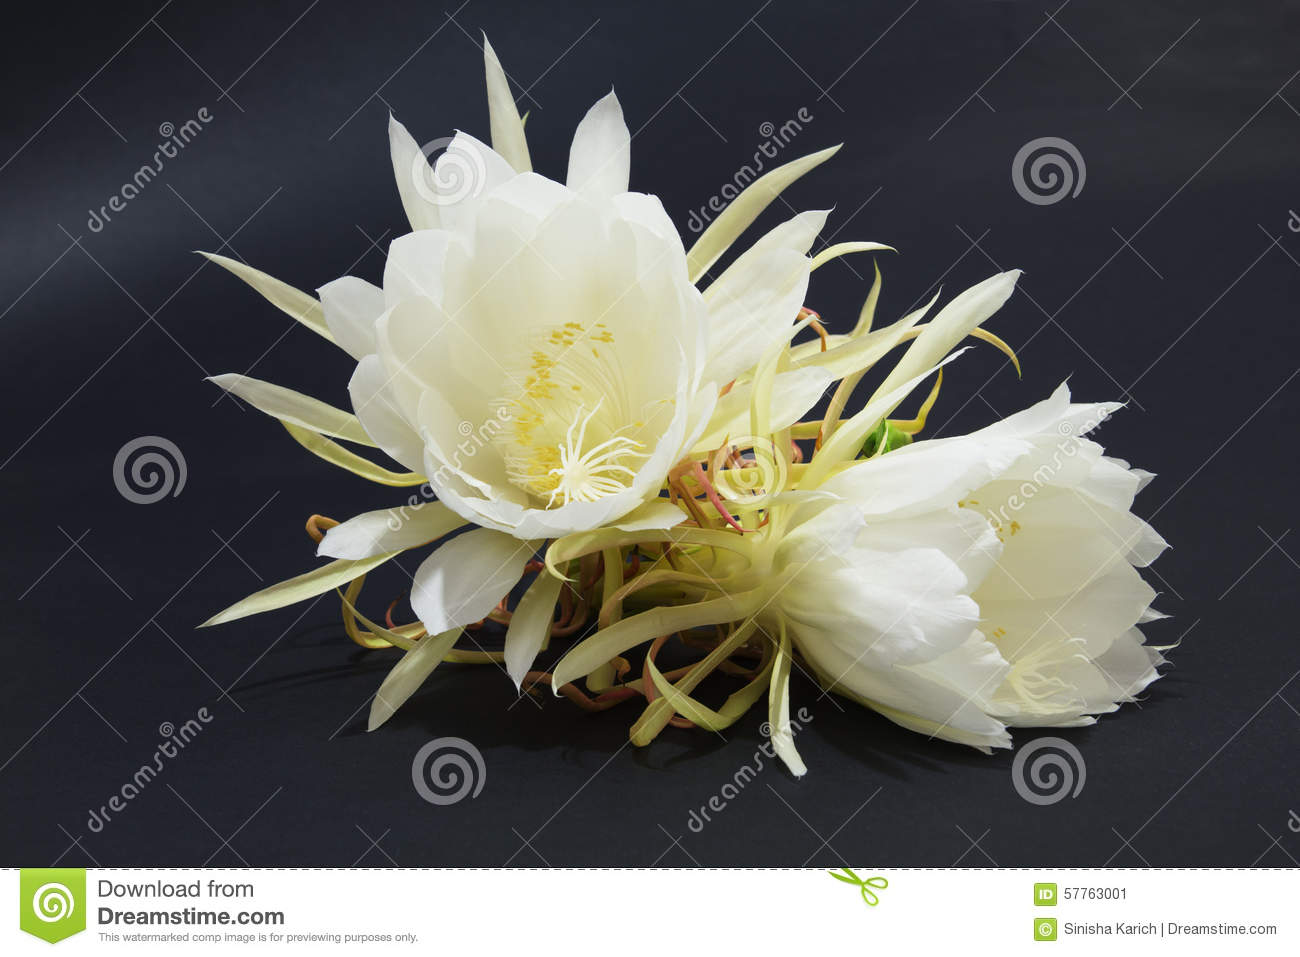 Two Cactus Blossoms on Black Background, Shallow Depth of Field ...